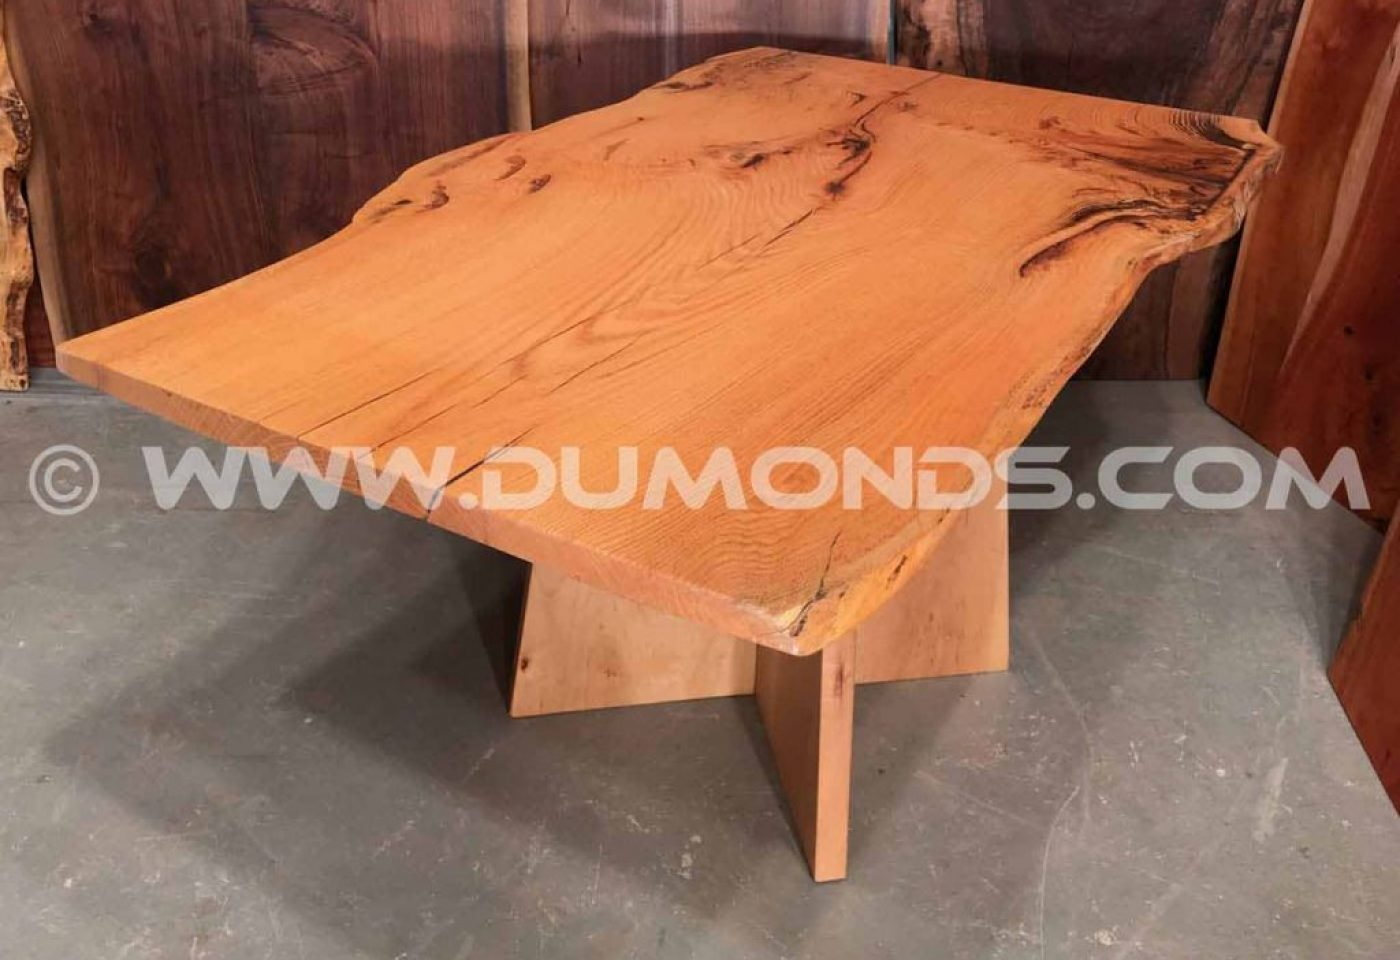 URBAN SALVAGED OAK LIVE EDGE SLAB TABLE WITH MAPLE PEDESTAL BASE